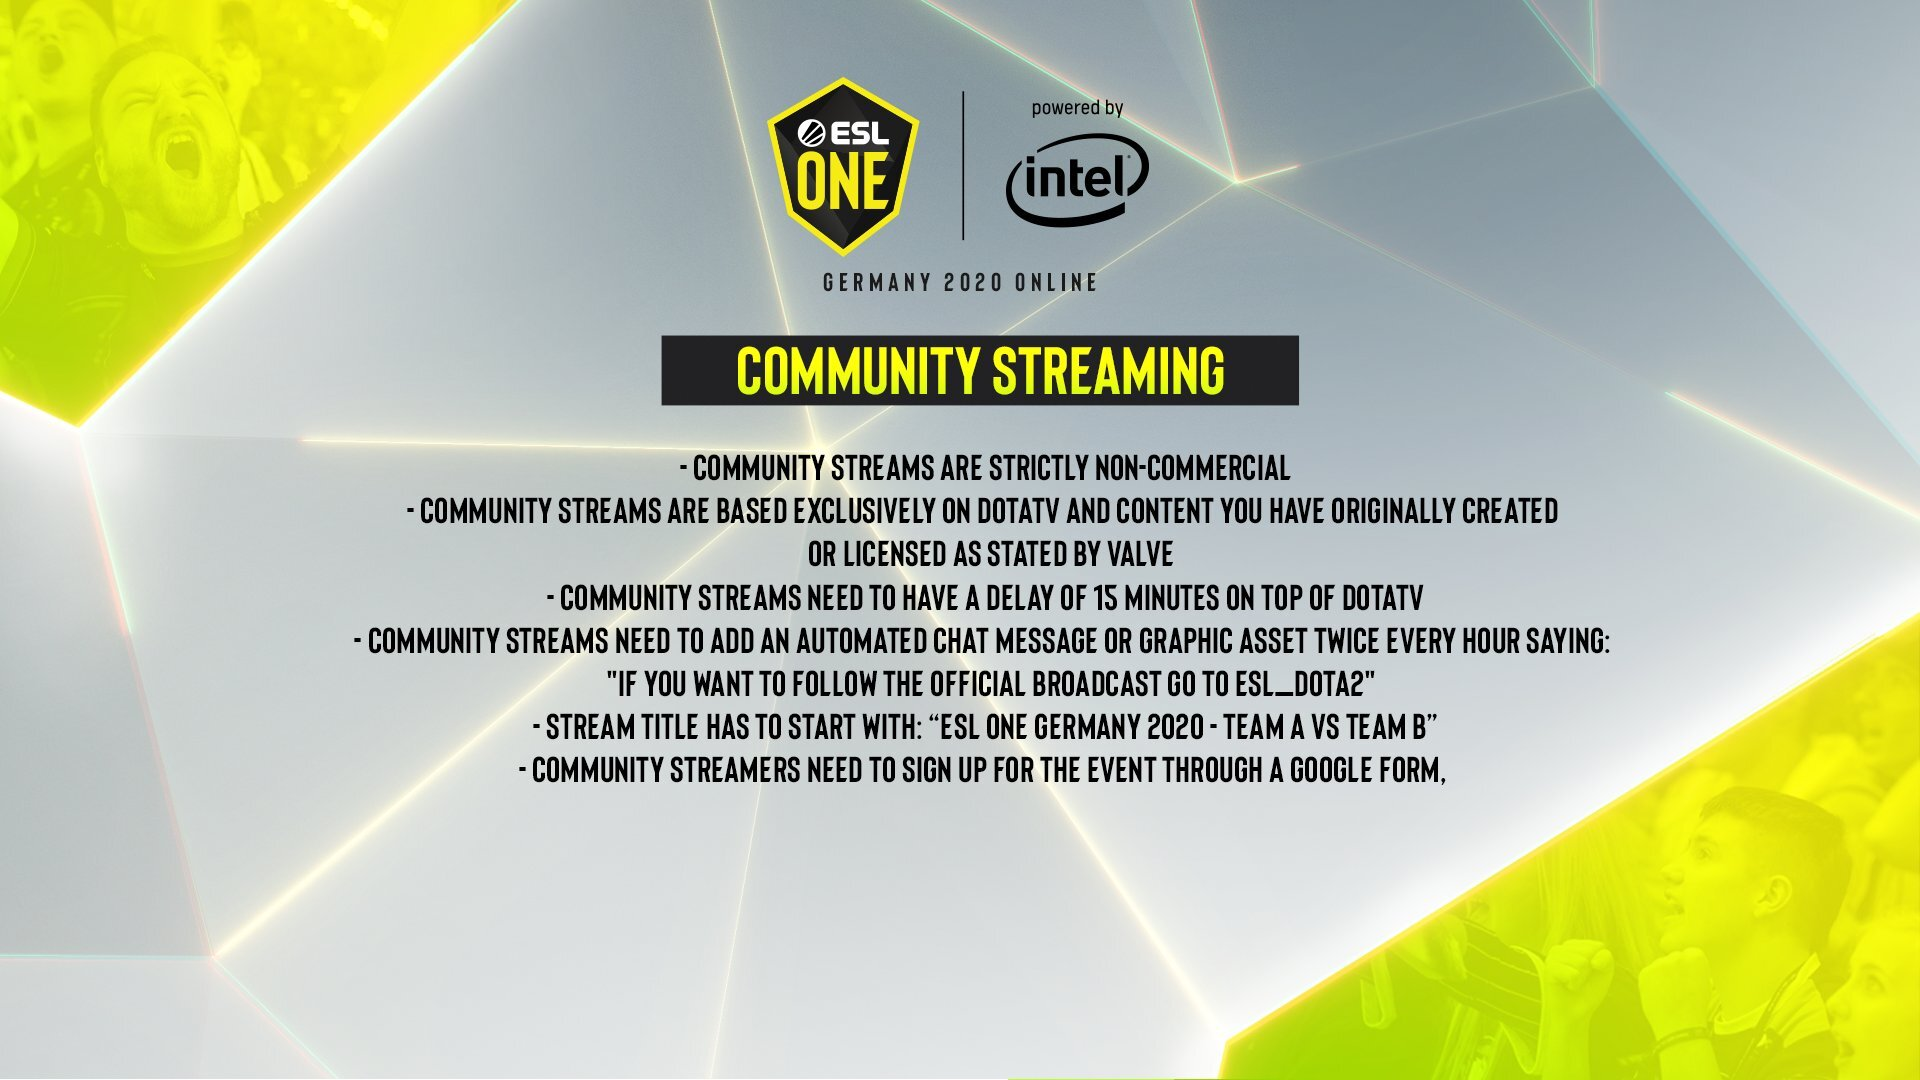 ESL One Germany 2020 requirements for community streamers